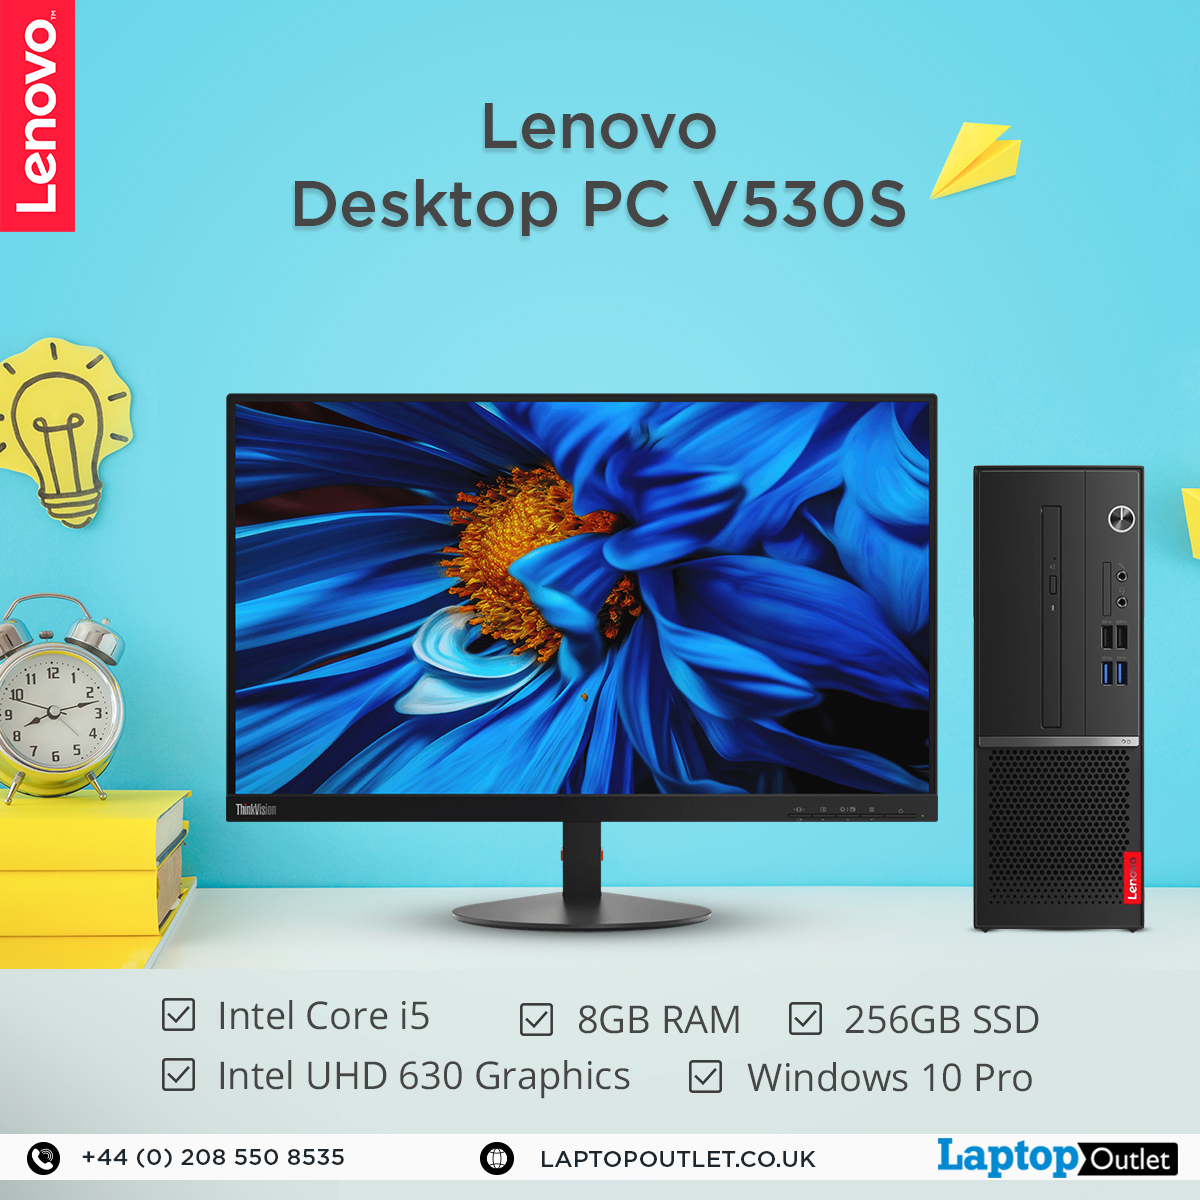 Equipped with the latest Intel® Core i5 processor, 8GB RAM and 256GB SSD, Lenovo V530S handles multitasking and large files with ease meanwhile maximising your productivity in no time.   View the details > http://bit.ly/2N3v15l    #LaptopOutlet #DesktopPC #PC #Lenovopic.twitter.com/bjVoRWpdCY